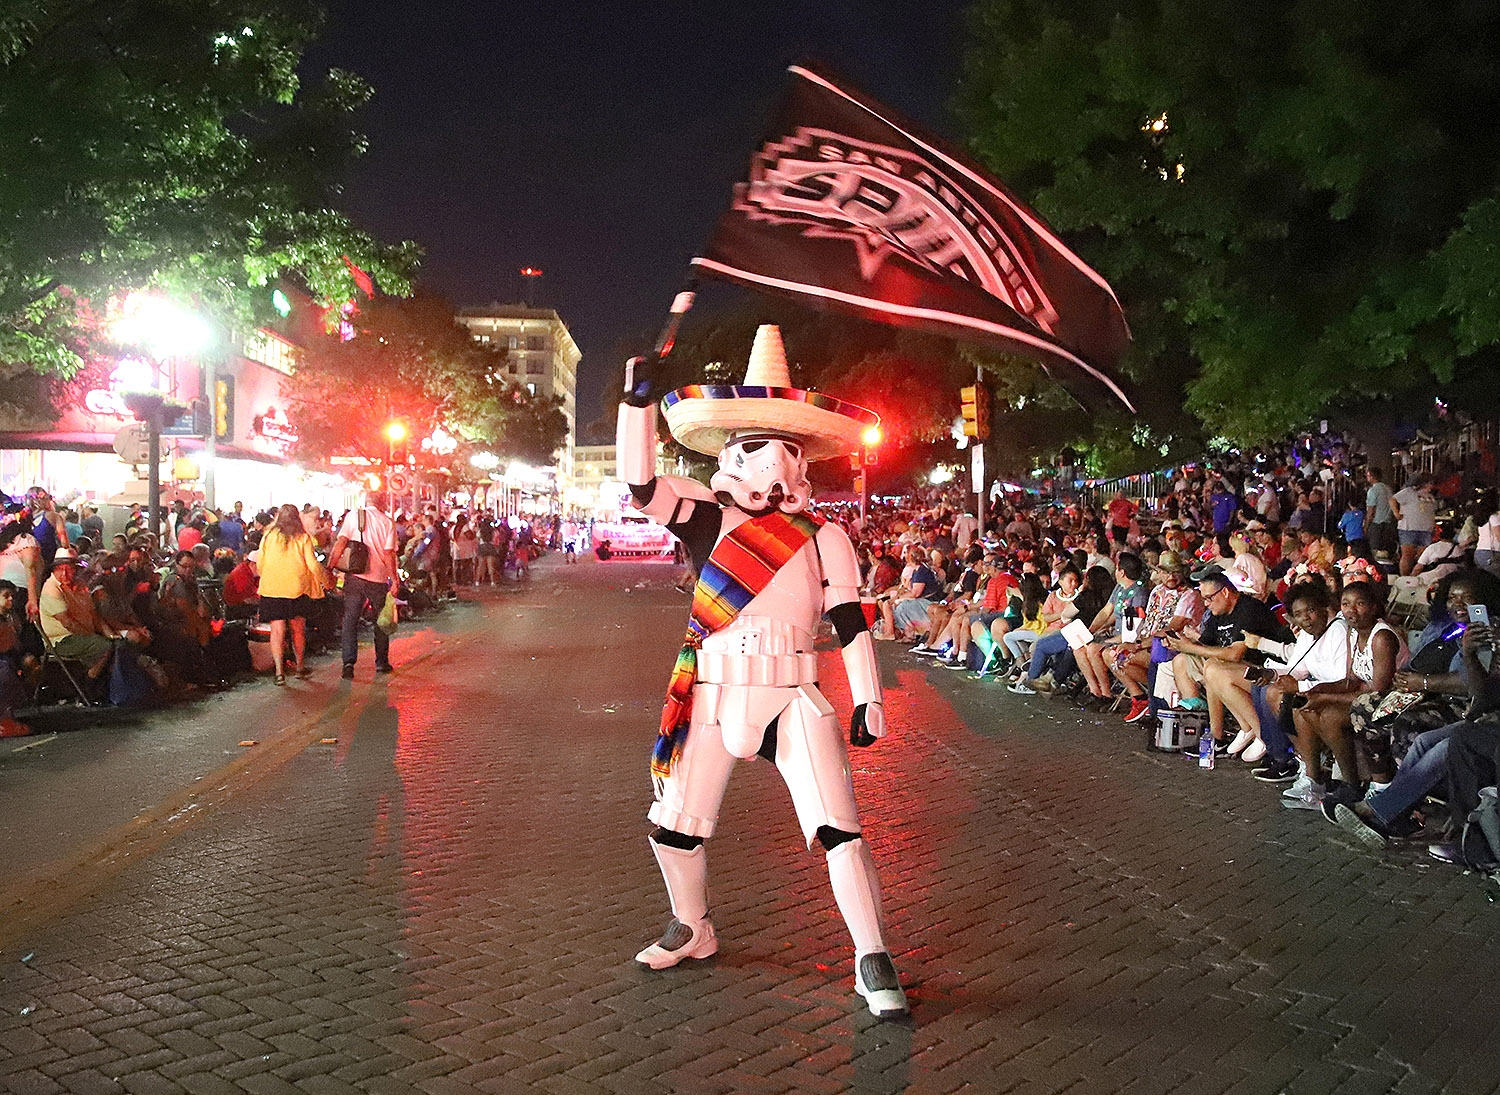 A stormtrooper sways a Spurs flag in front of a crowd on Alamo Plaza during the Flambeau Parade. <em>Photo by Brianna Rodrigue | Heron contributor</em>